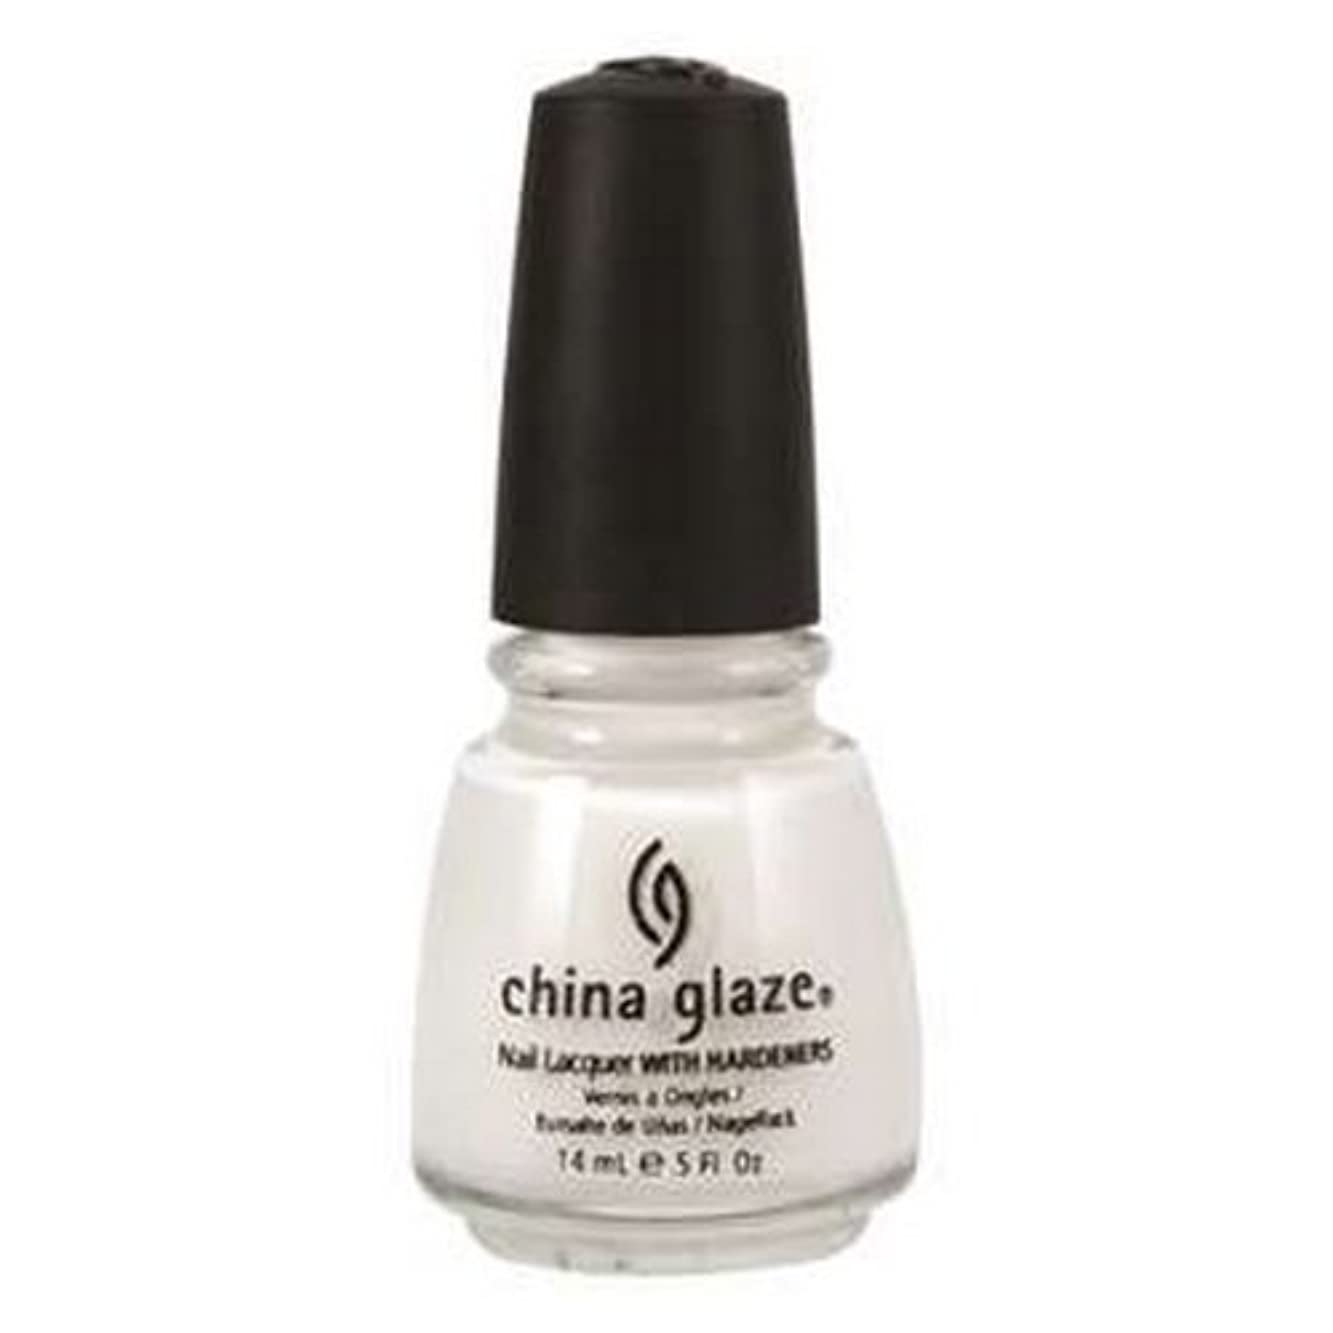 プレゼンター可決触覚(6 Pack) CHINA GLAZE Nail Lacquer with Nail Hardner 2 - Snow (並行輸入品)